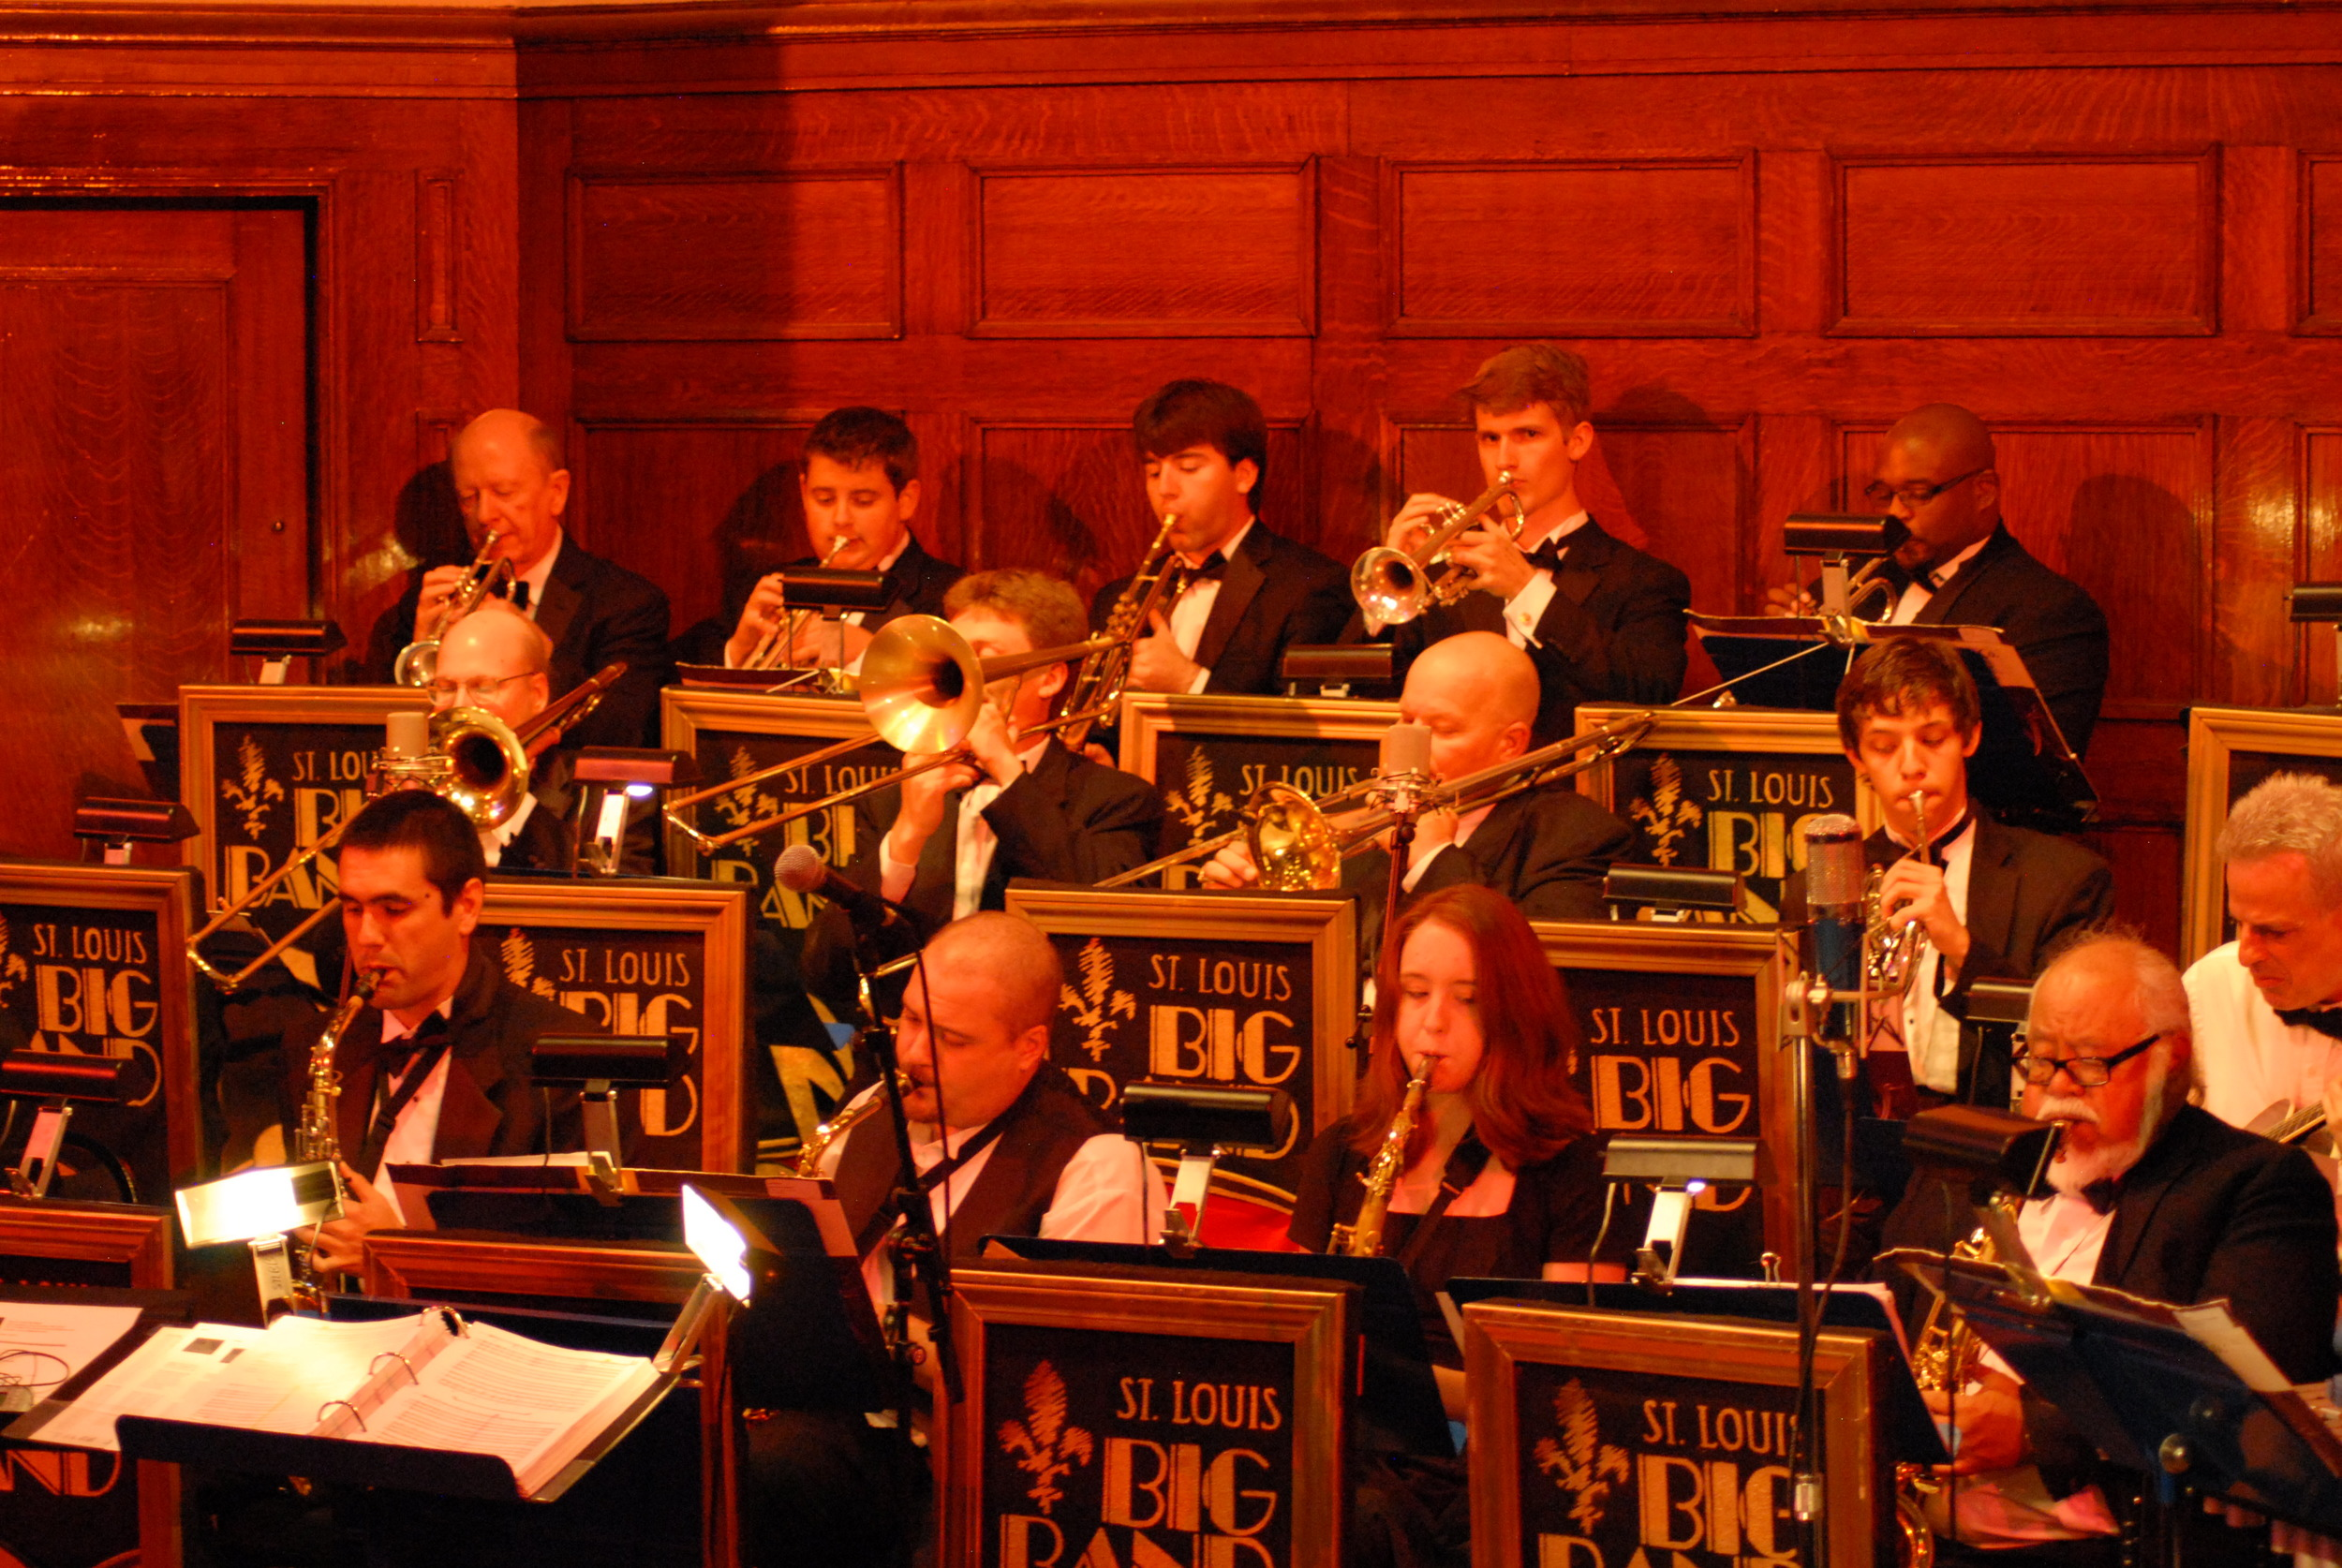 ST. LOUIS BIG BAND AT SHELDON